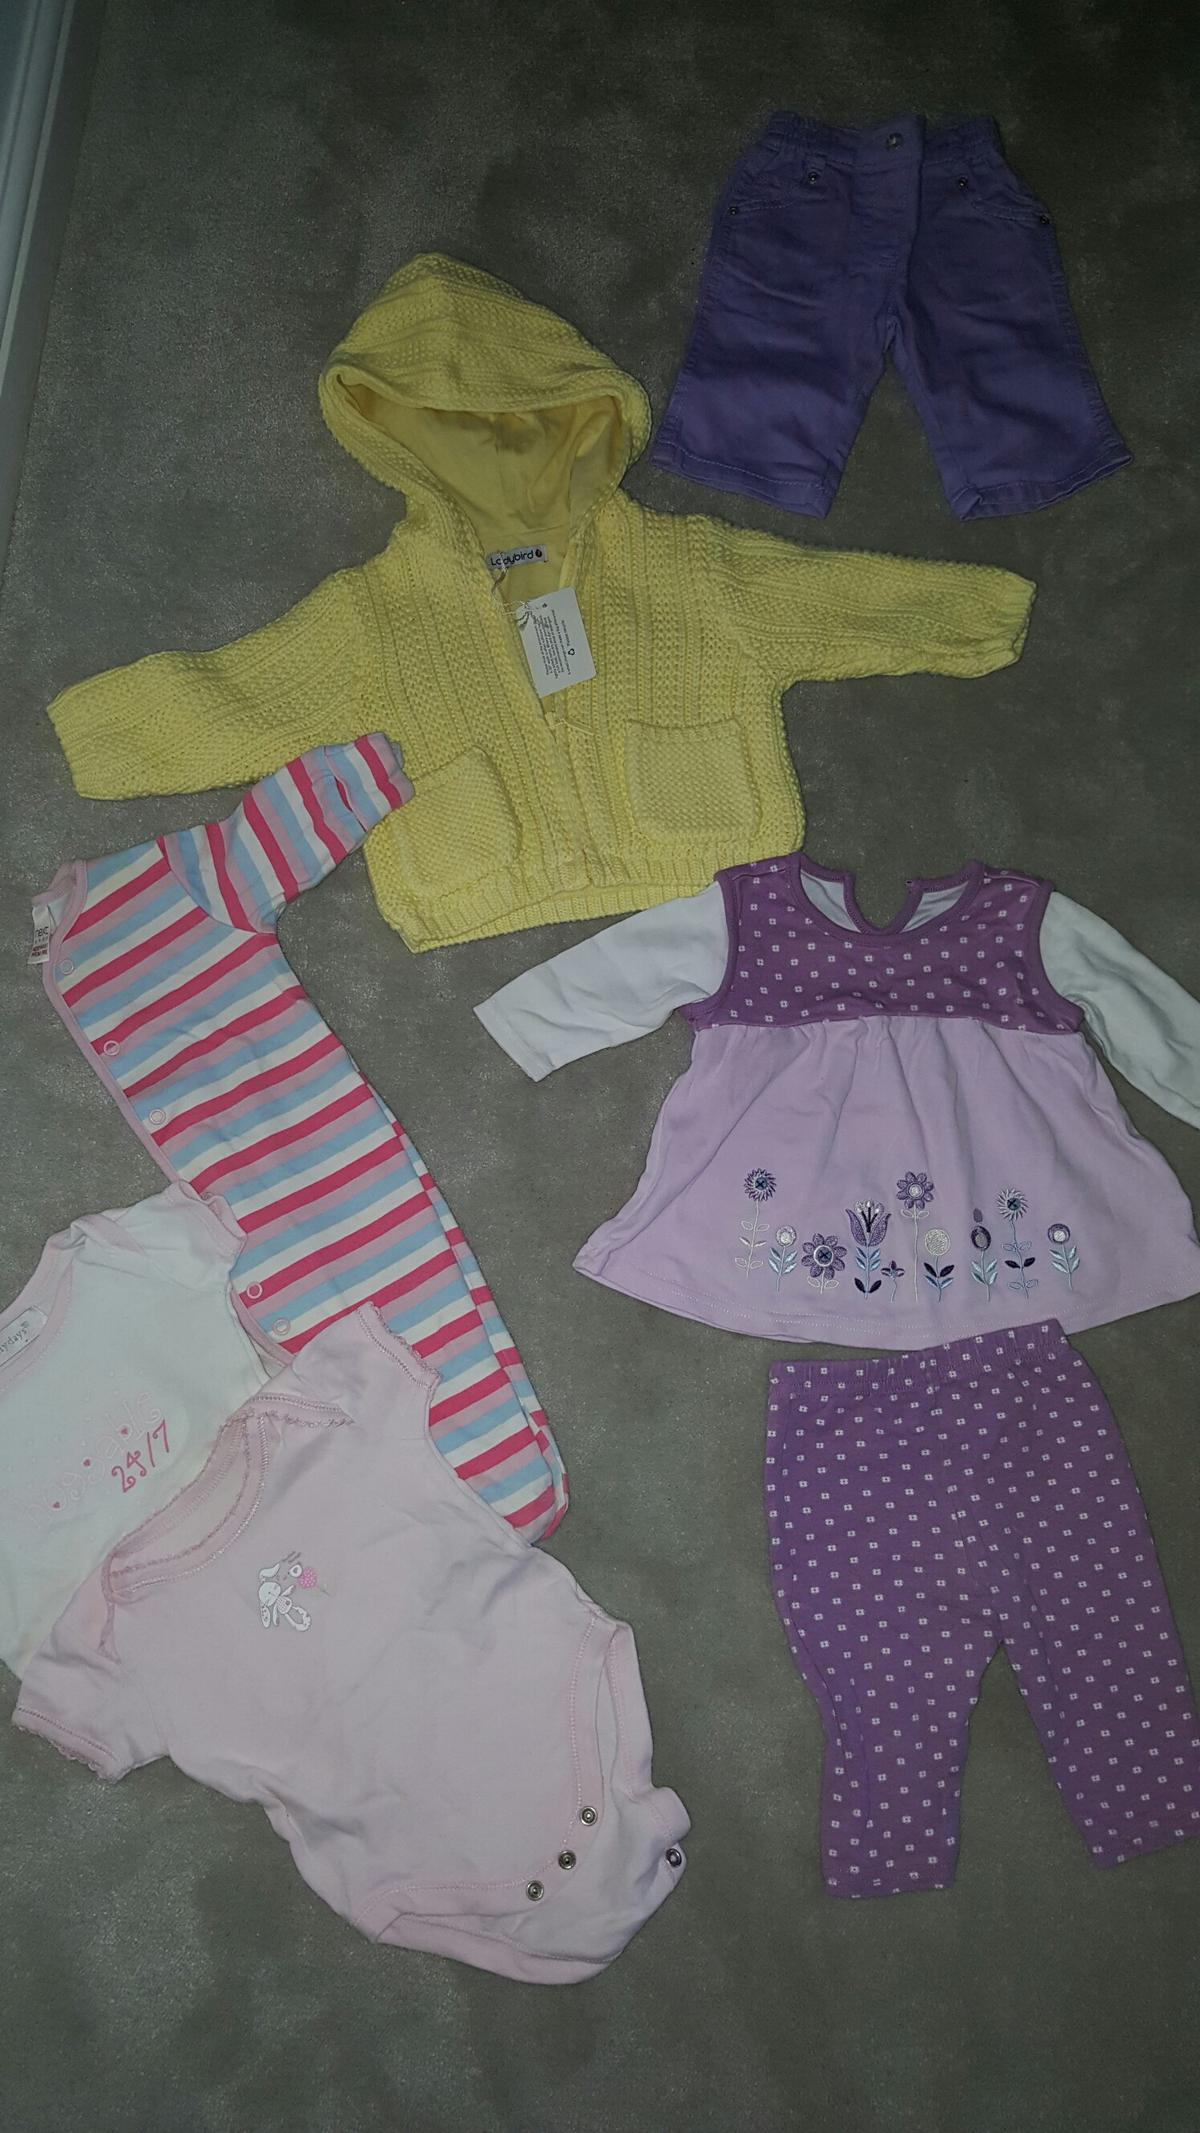 Clothes, Shoes & Accessories Girls 0-3 Months Bundle Girls' Clothing (0-24 Months)